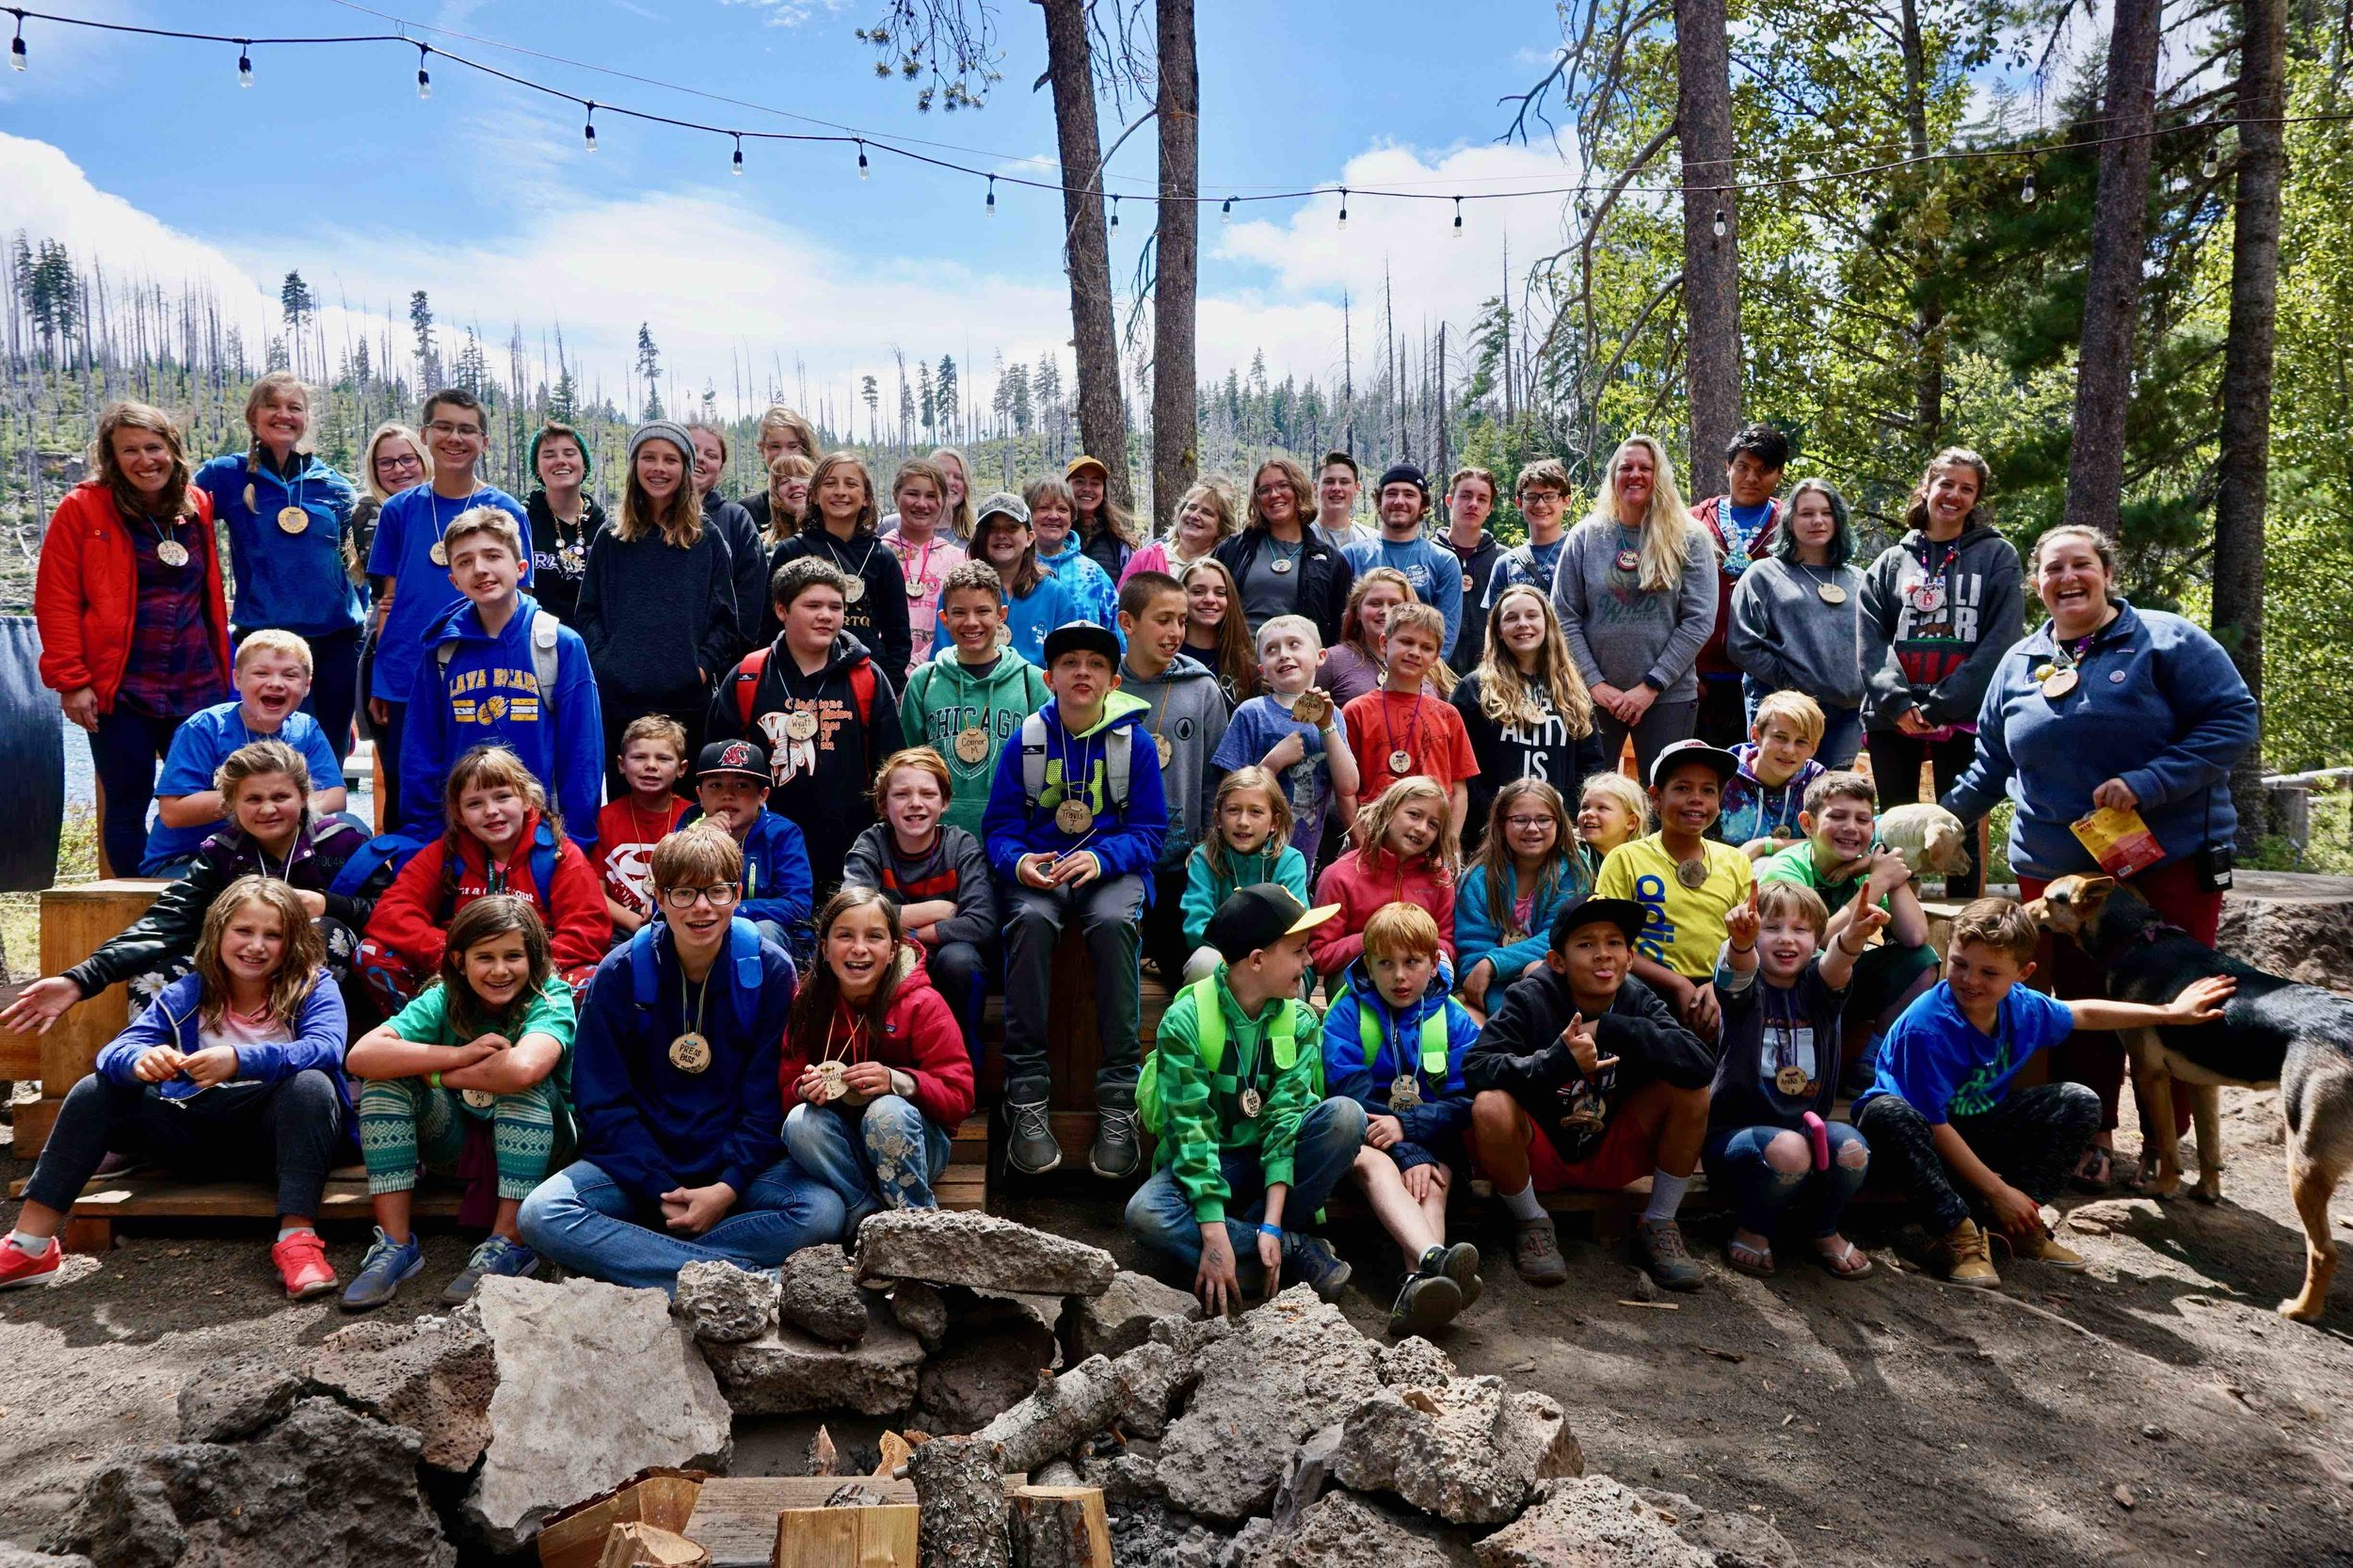 REGISTER - Click here to open a new window and begin your T1D Buddy Camp registration on the Camp Tamarack website.